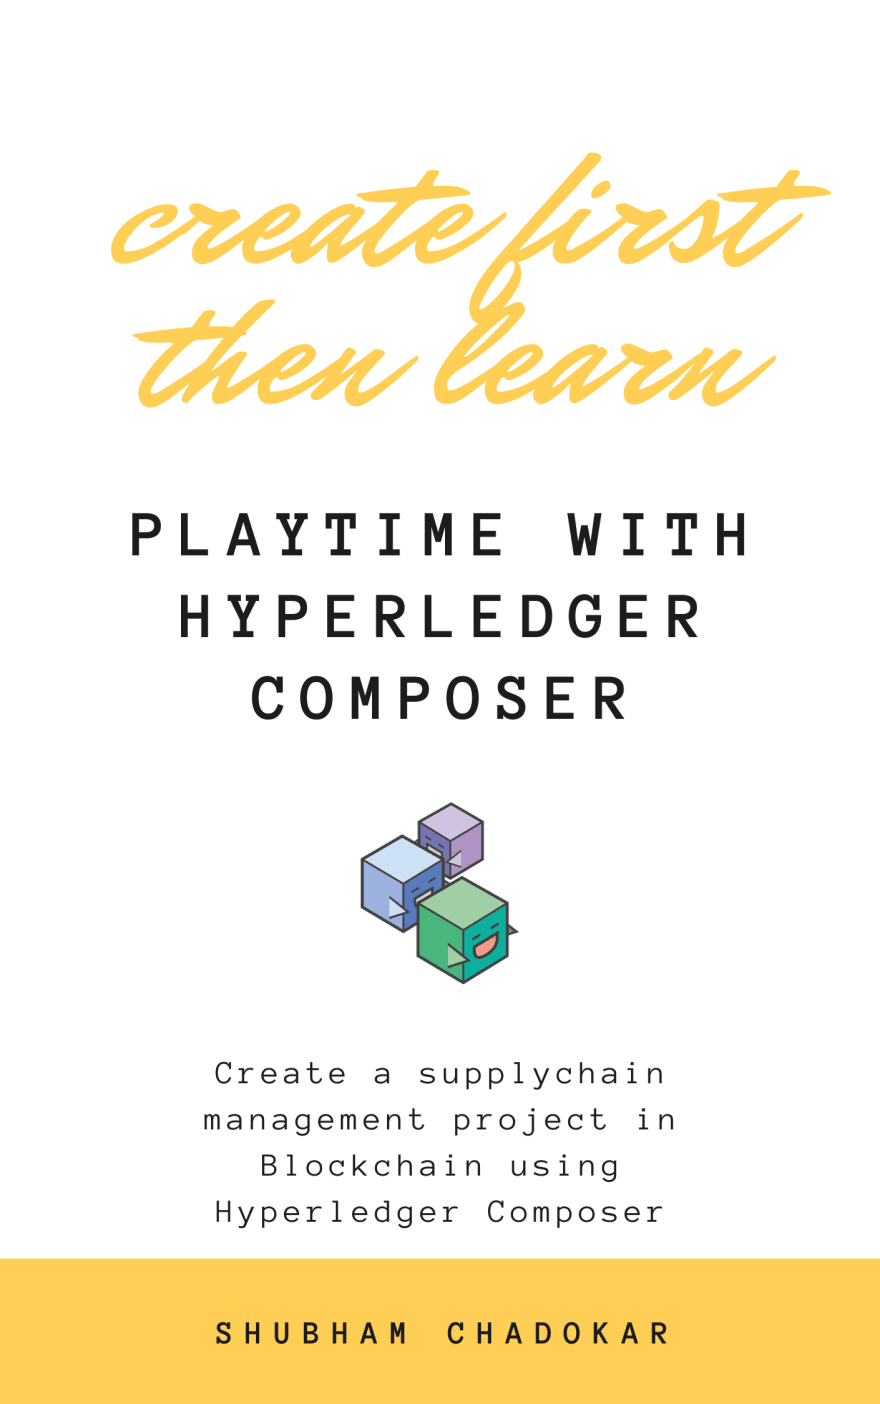 Playtime with Hyperledger Composer